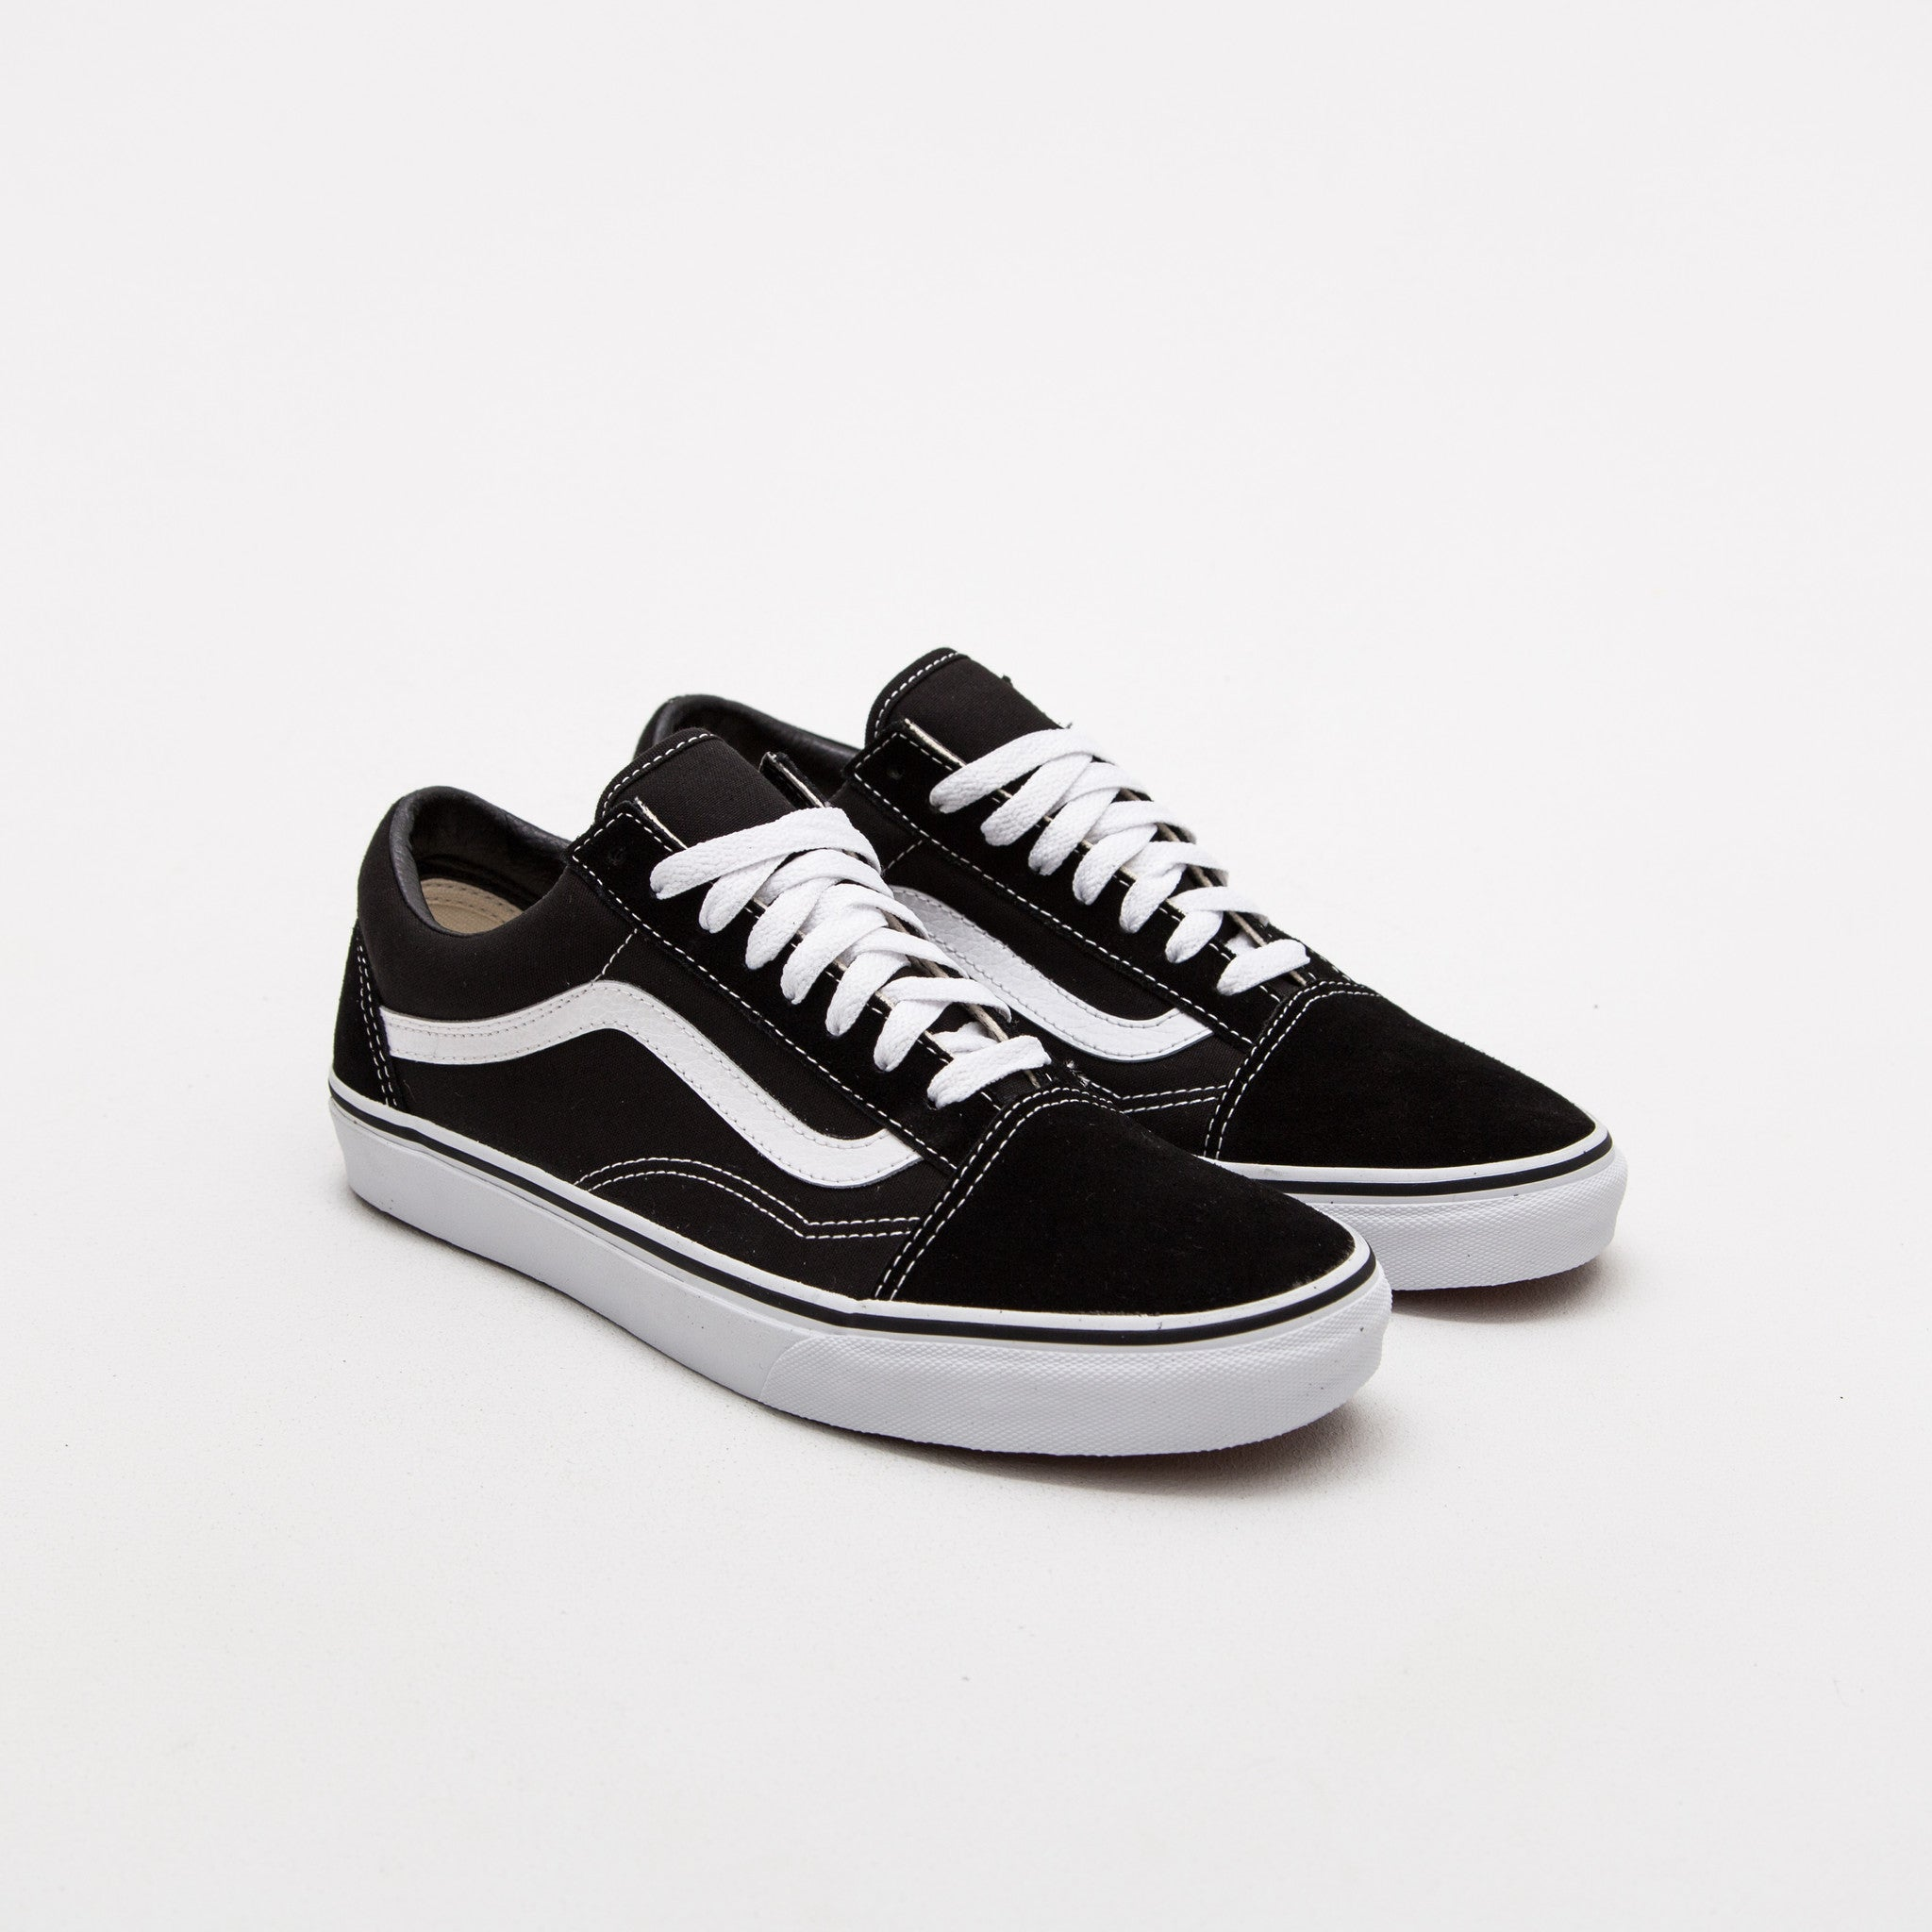 Vans Old Skool Sneakers - Black / White | AStore